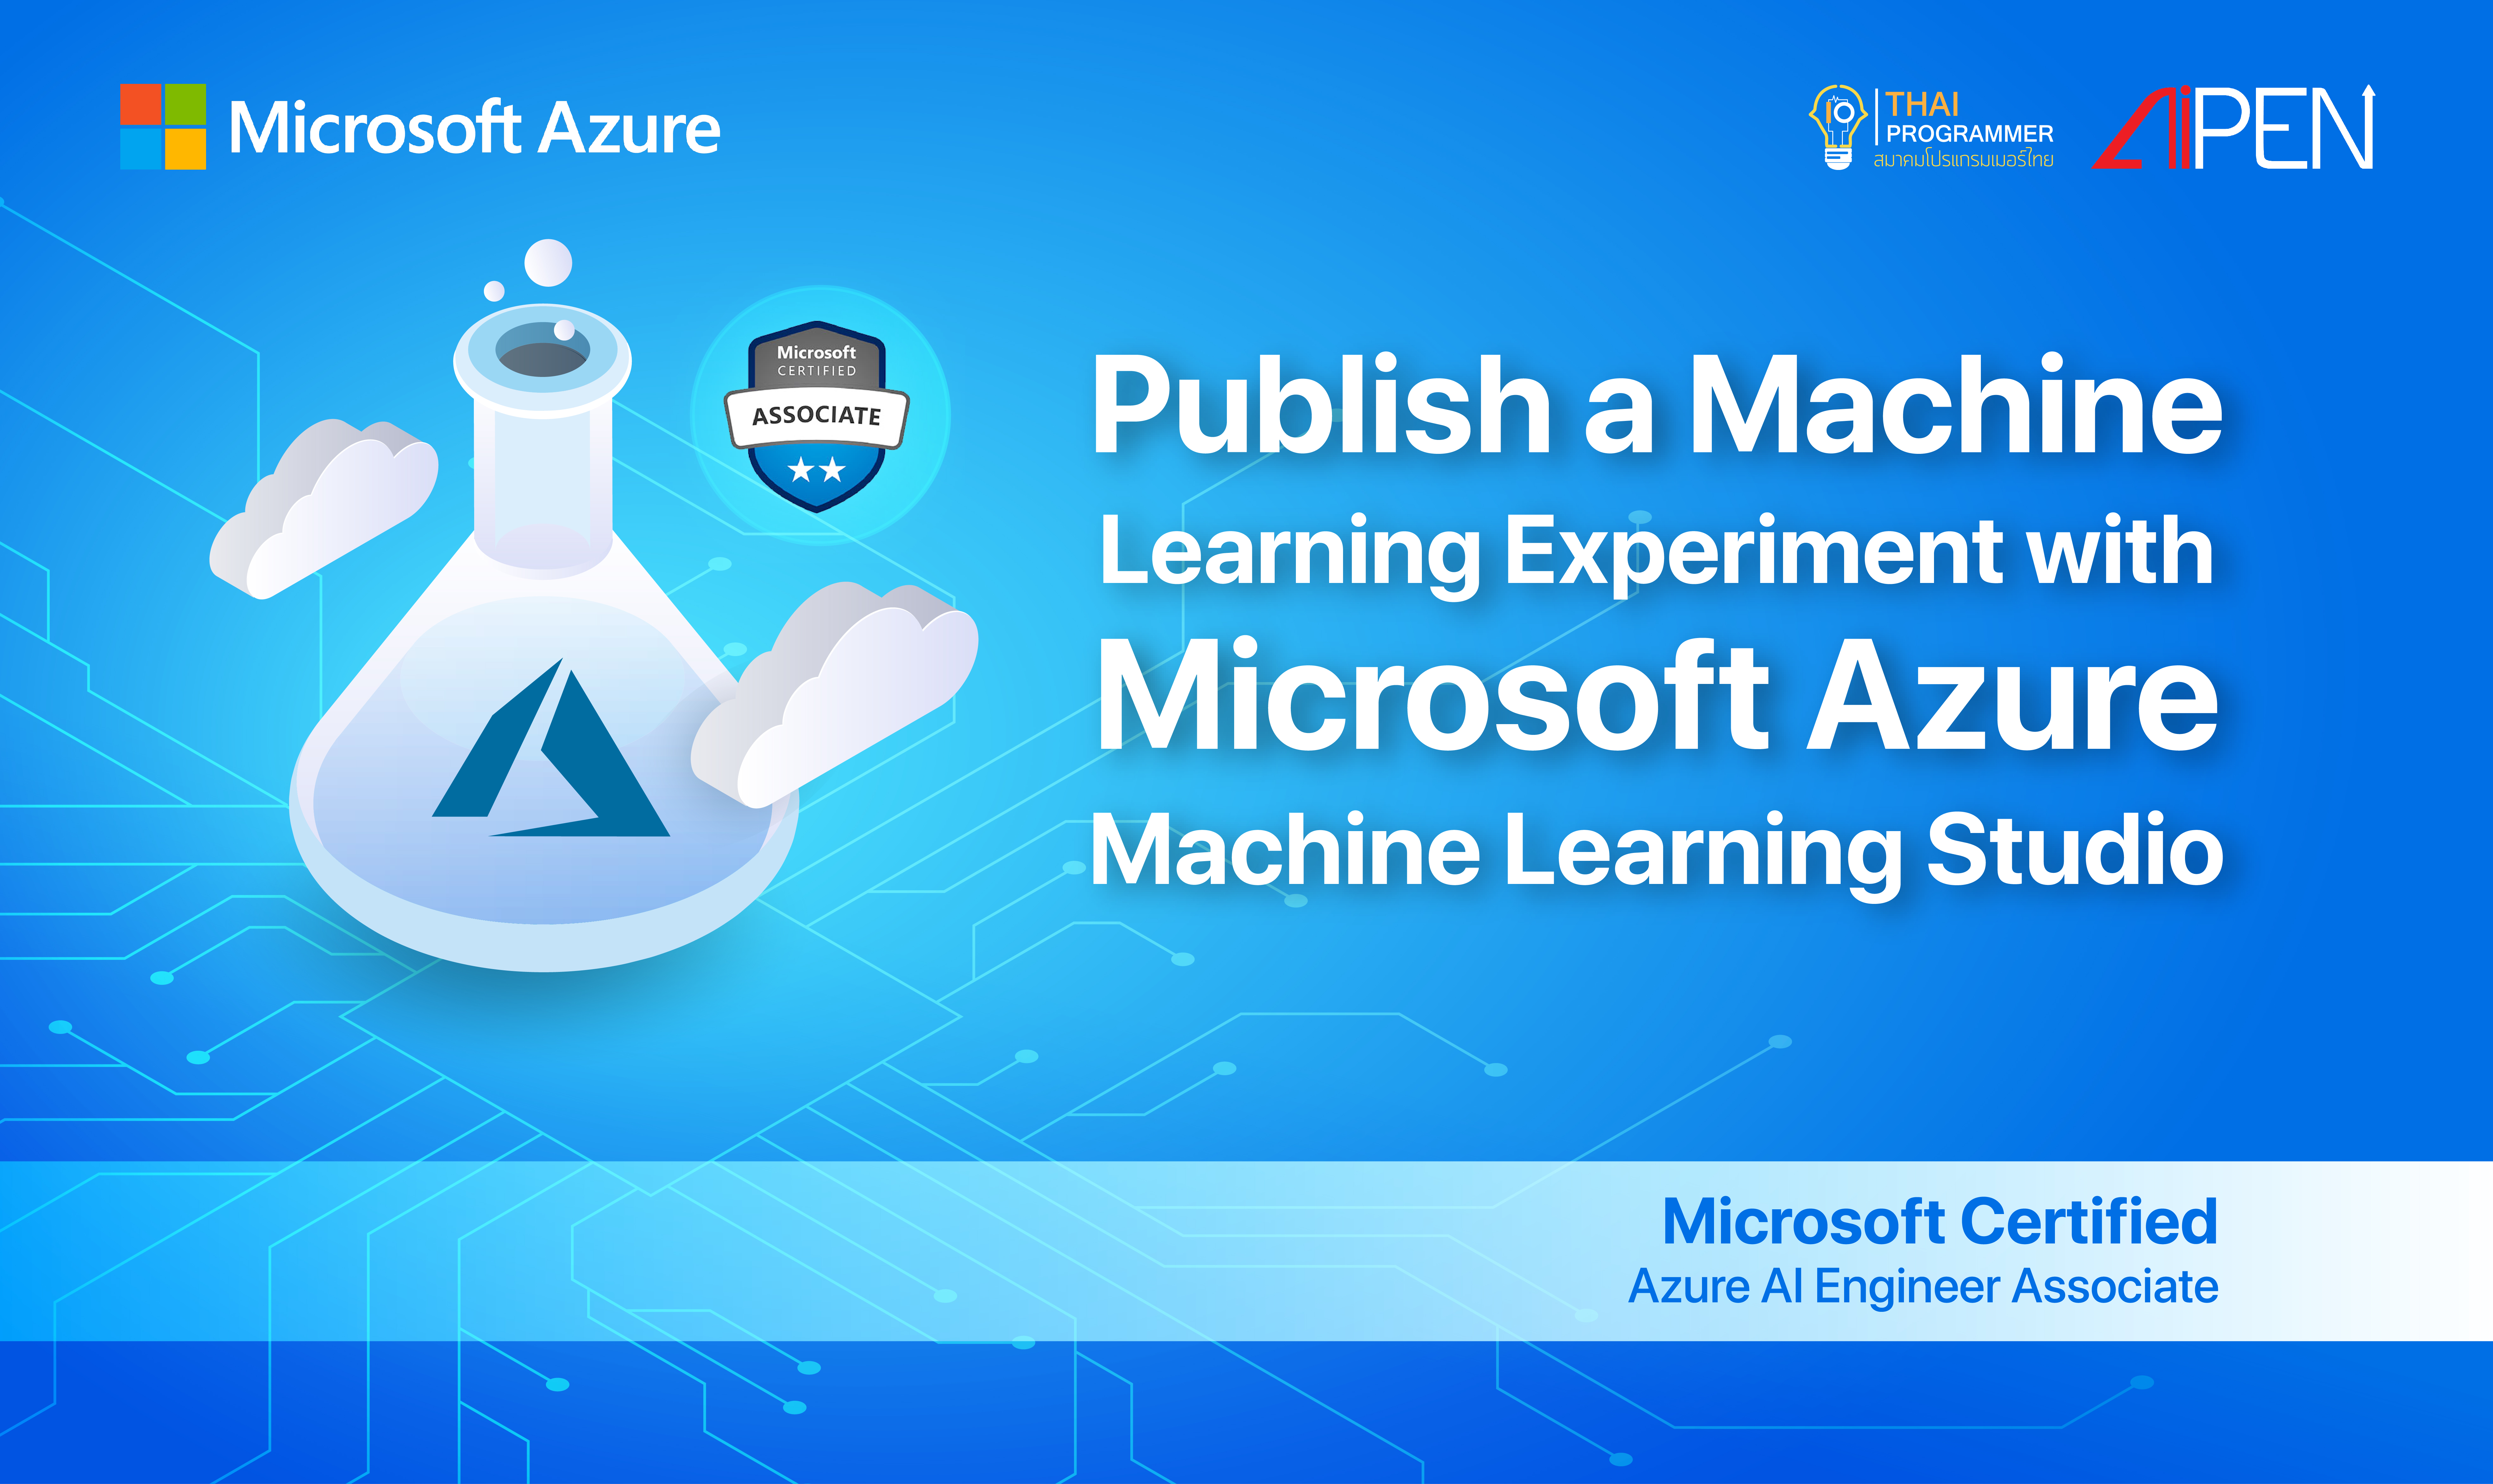 Microsoft Azure : Publish a Machine Learning Experiment with Microsoft Azure Machine Learning Studio AZ-LEARN-13